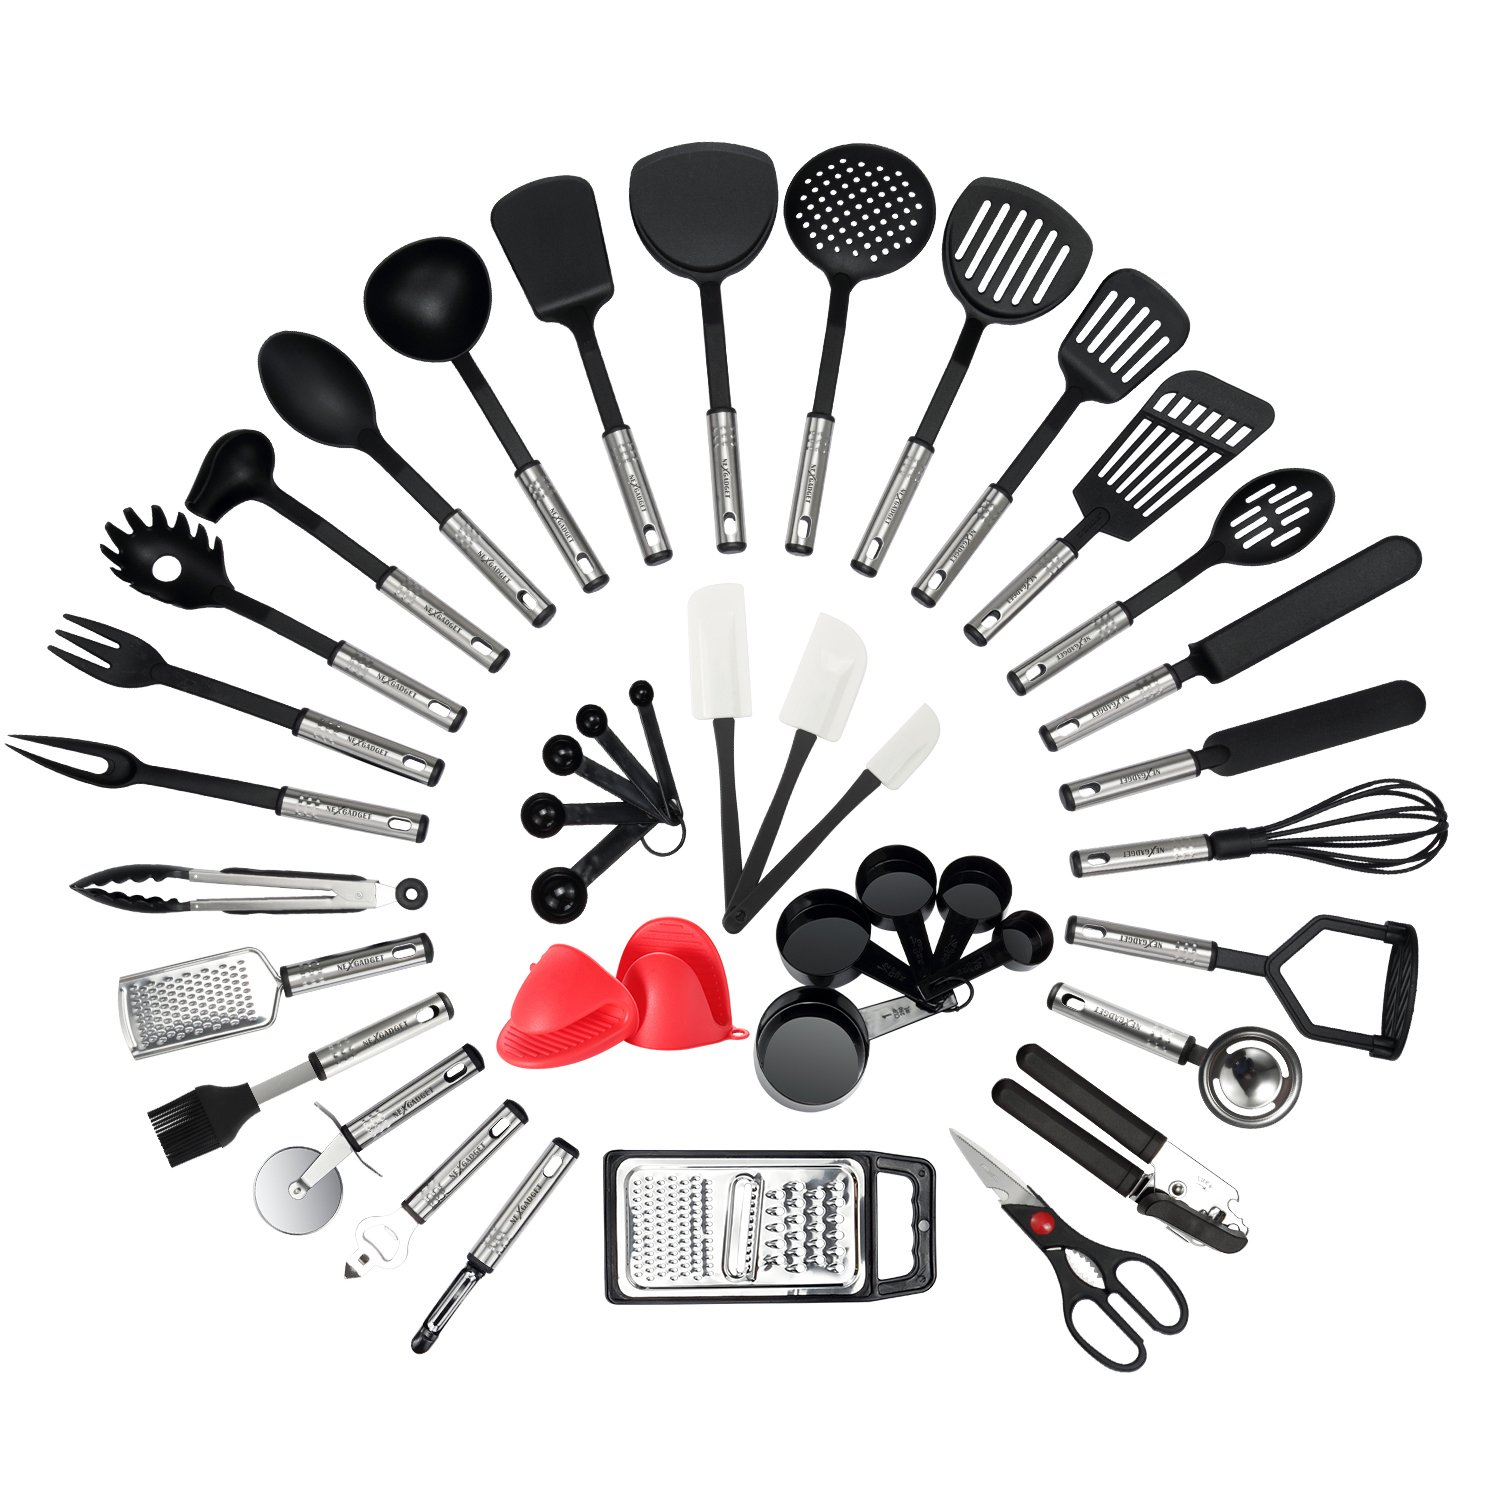 NexGadget Premium Kitchen Utensils 42 Pieces Kitchen Utensils Sets Stainless Steel And Nylon Cooking Tools Spoons, Turners, Tongs, Spatulas, Pizza Cutter, Whisk And More